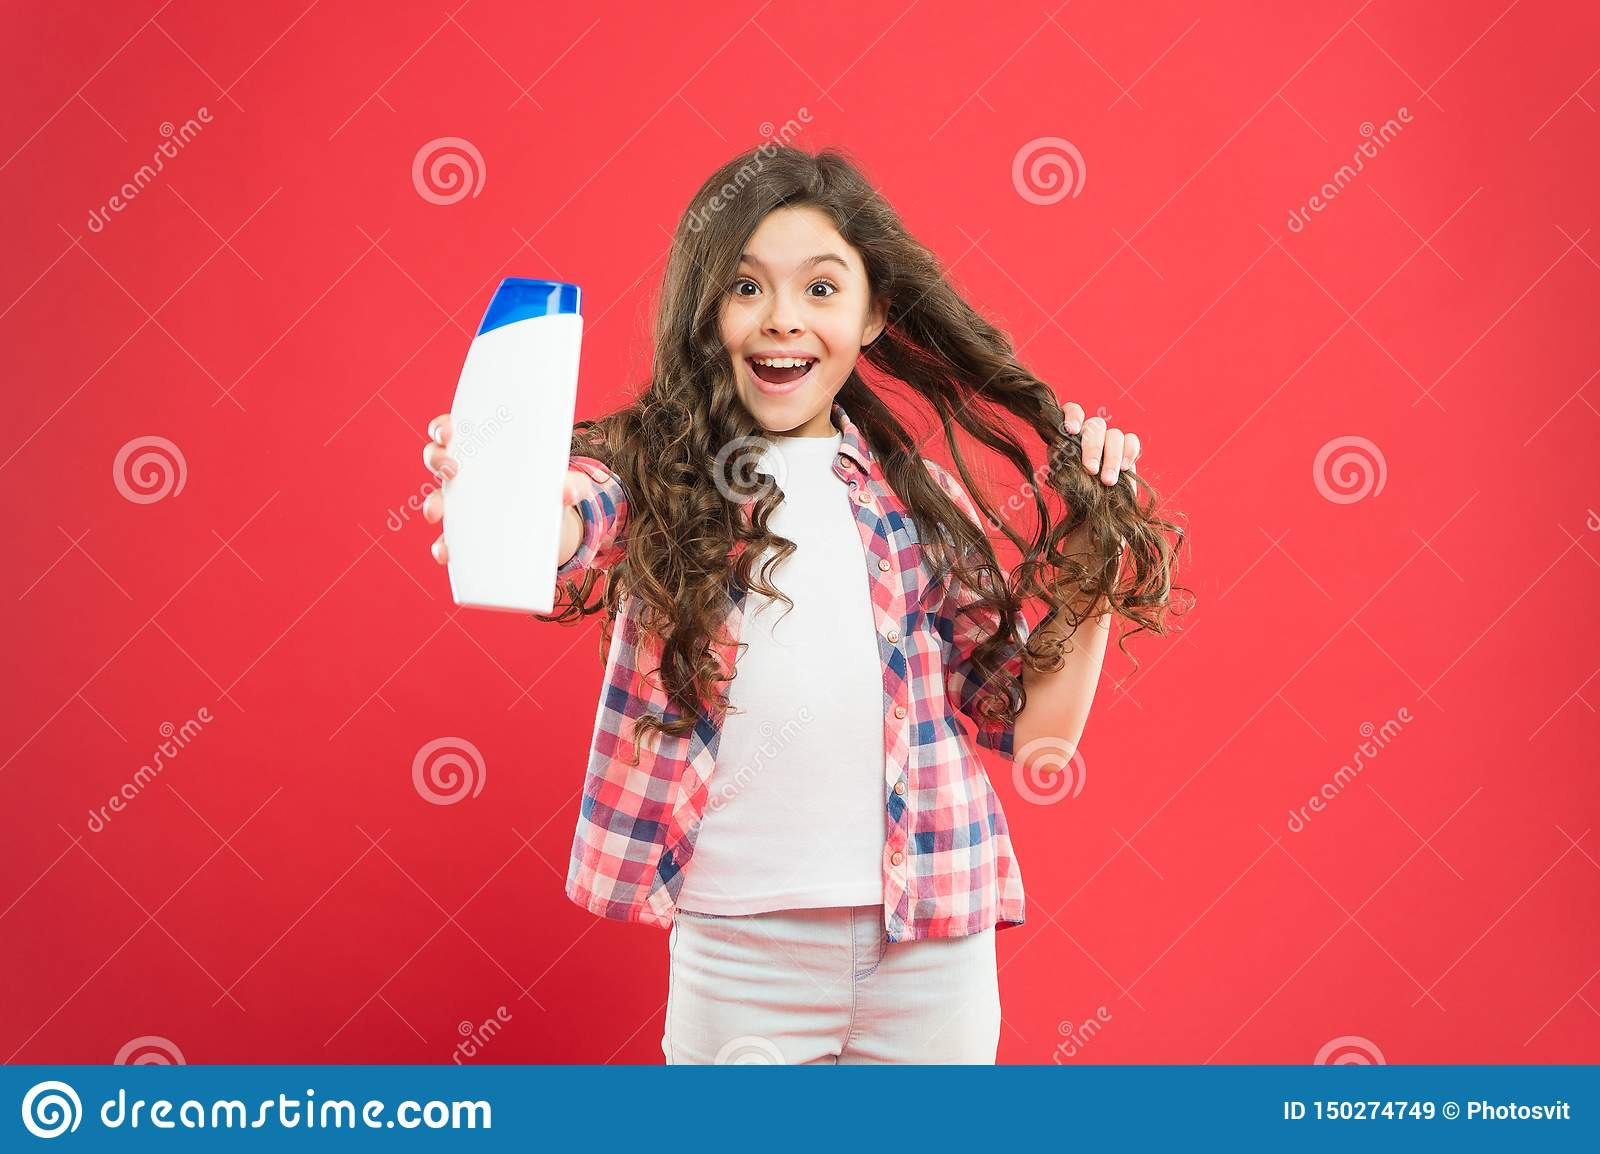 Girl active kid with long hair. Dry shampoo. Easy tips making hairstyle for kids. Strong and healthy hair concept. Long